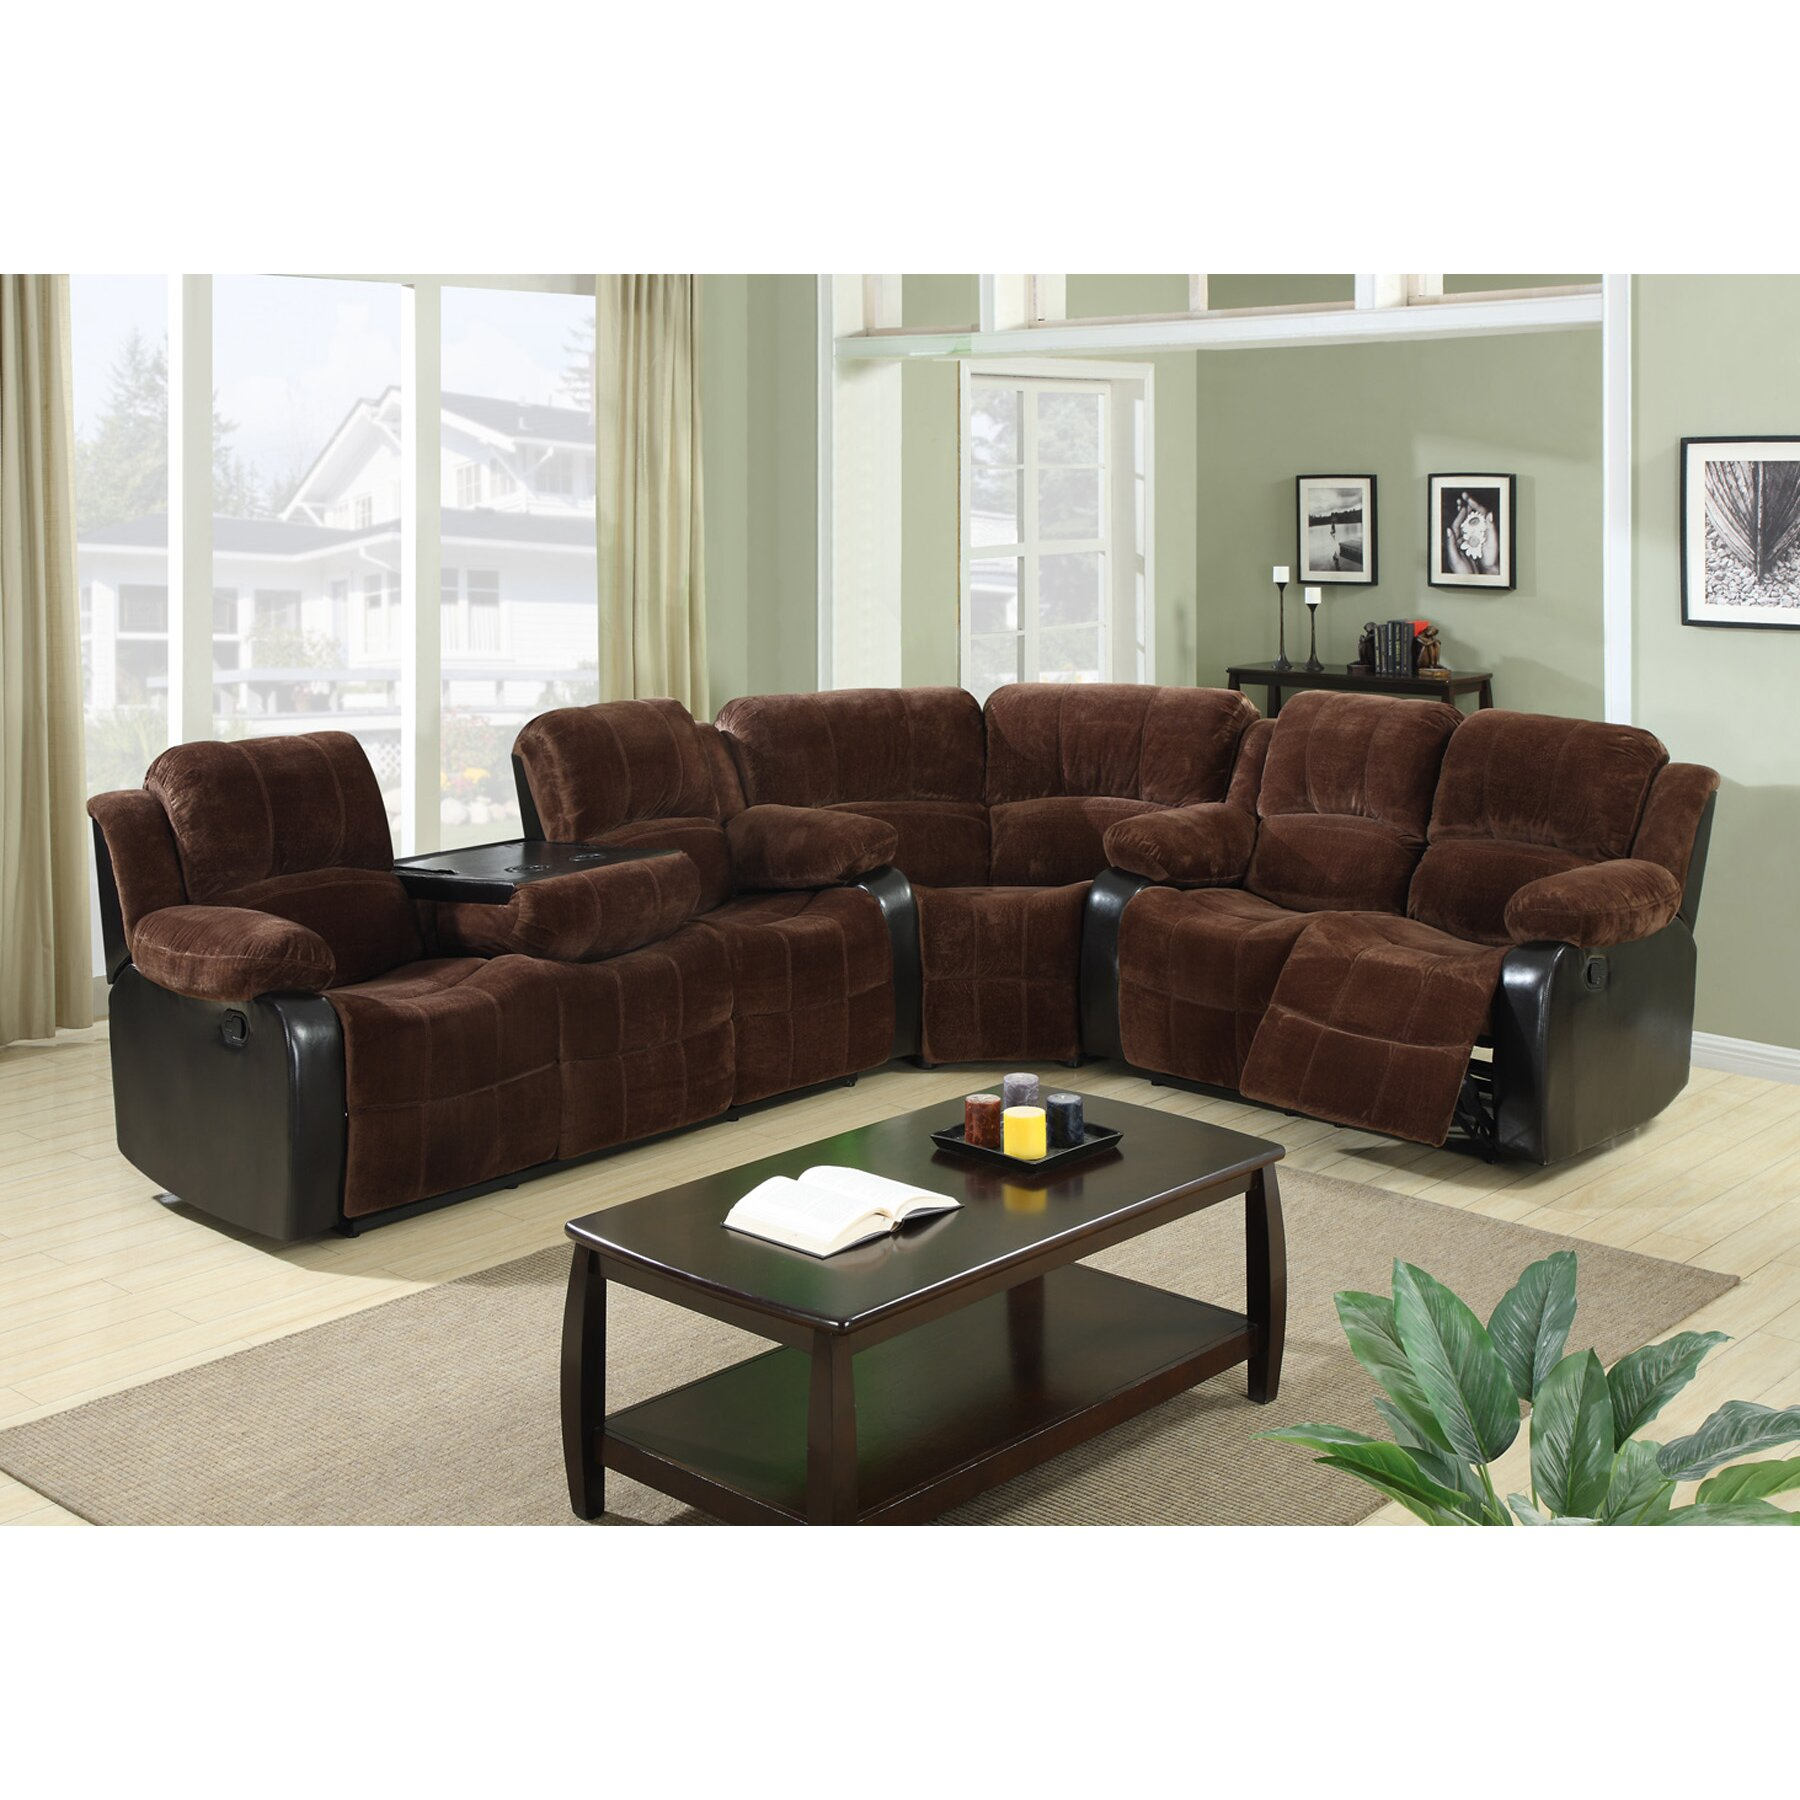 Best quality furniture fabric sectional wayfair for Best quality furniture